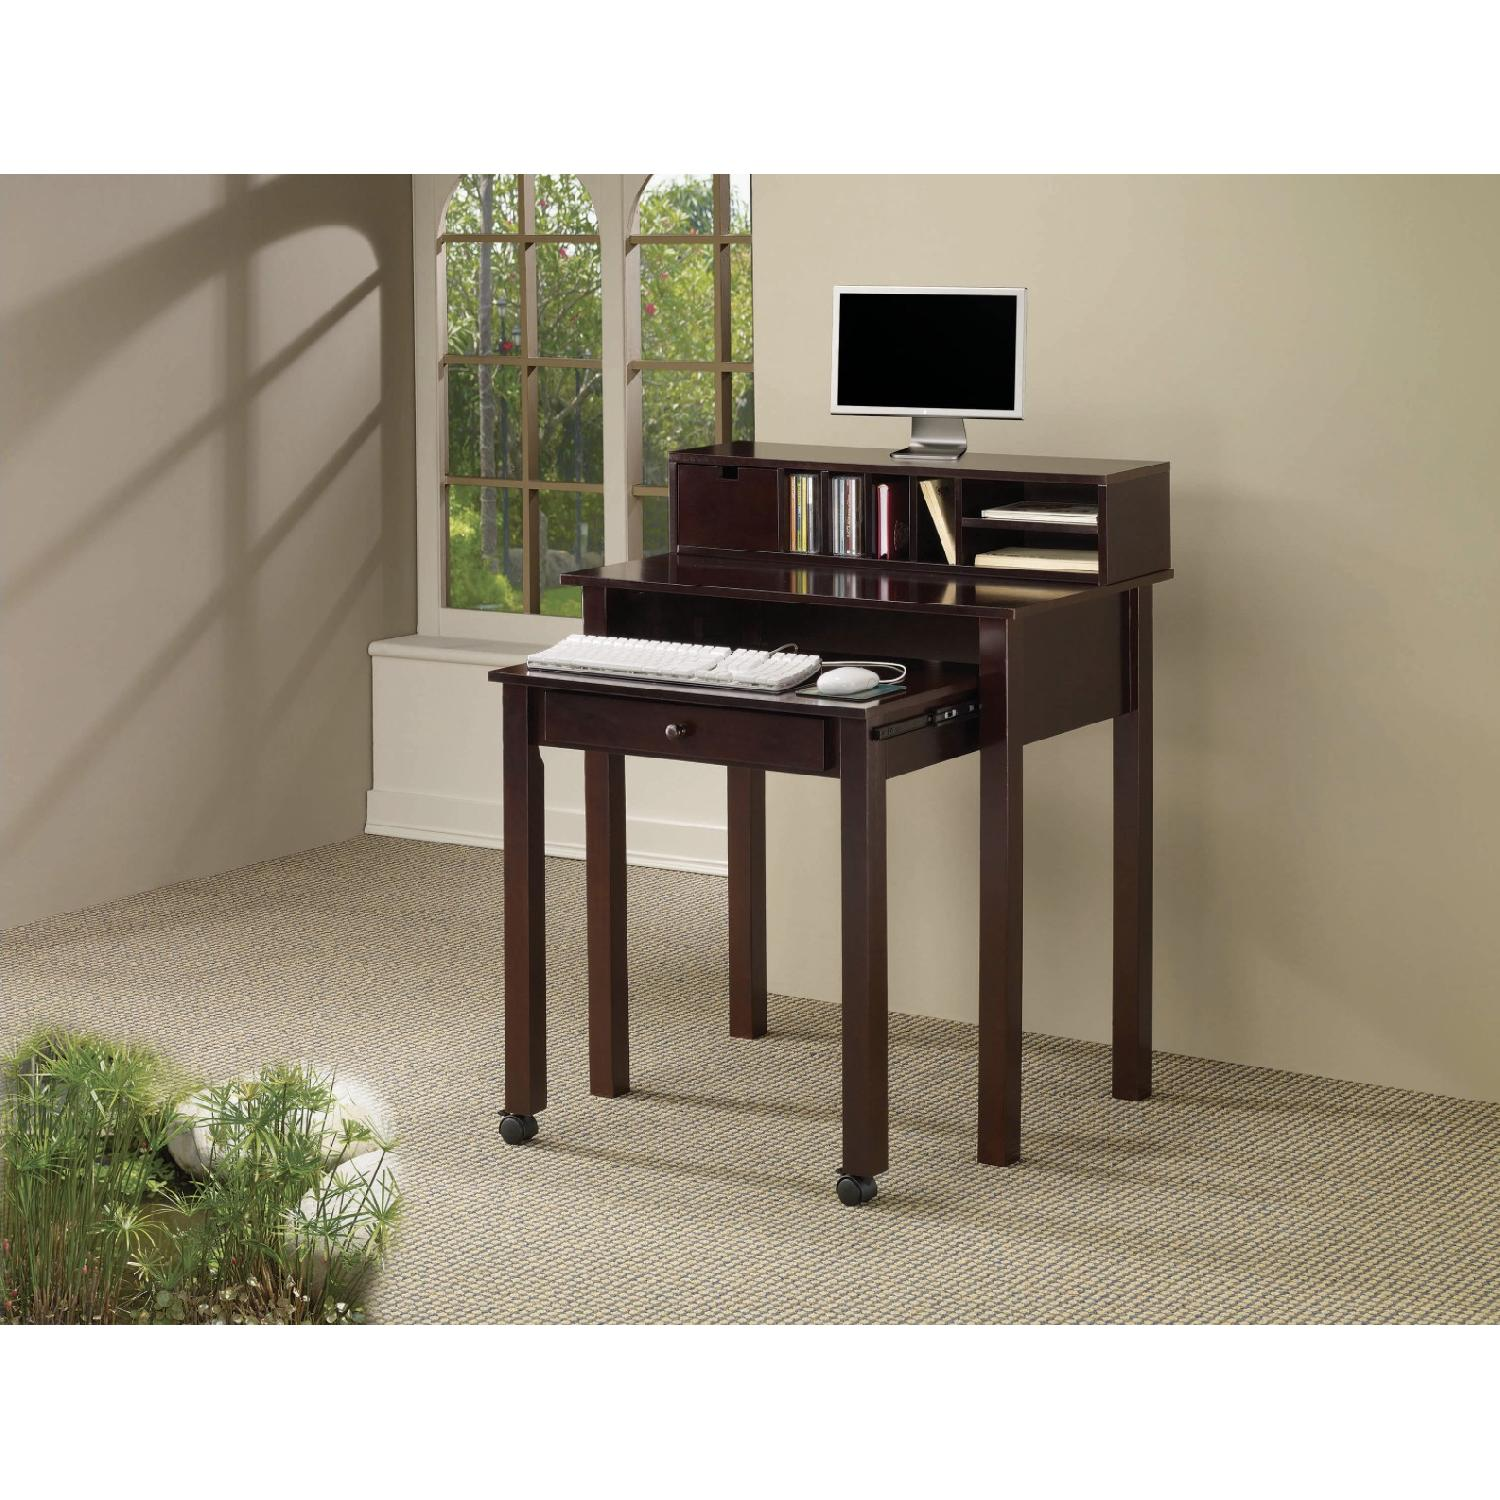 Coaster Roll Out Writing Desk - image-1